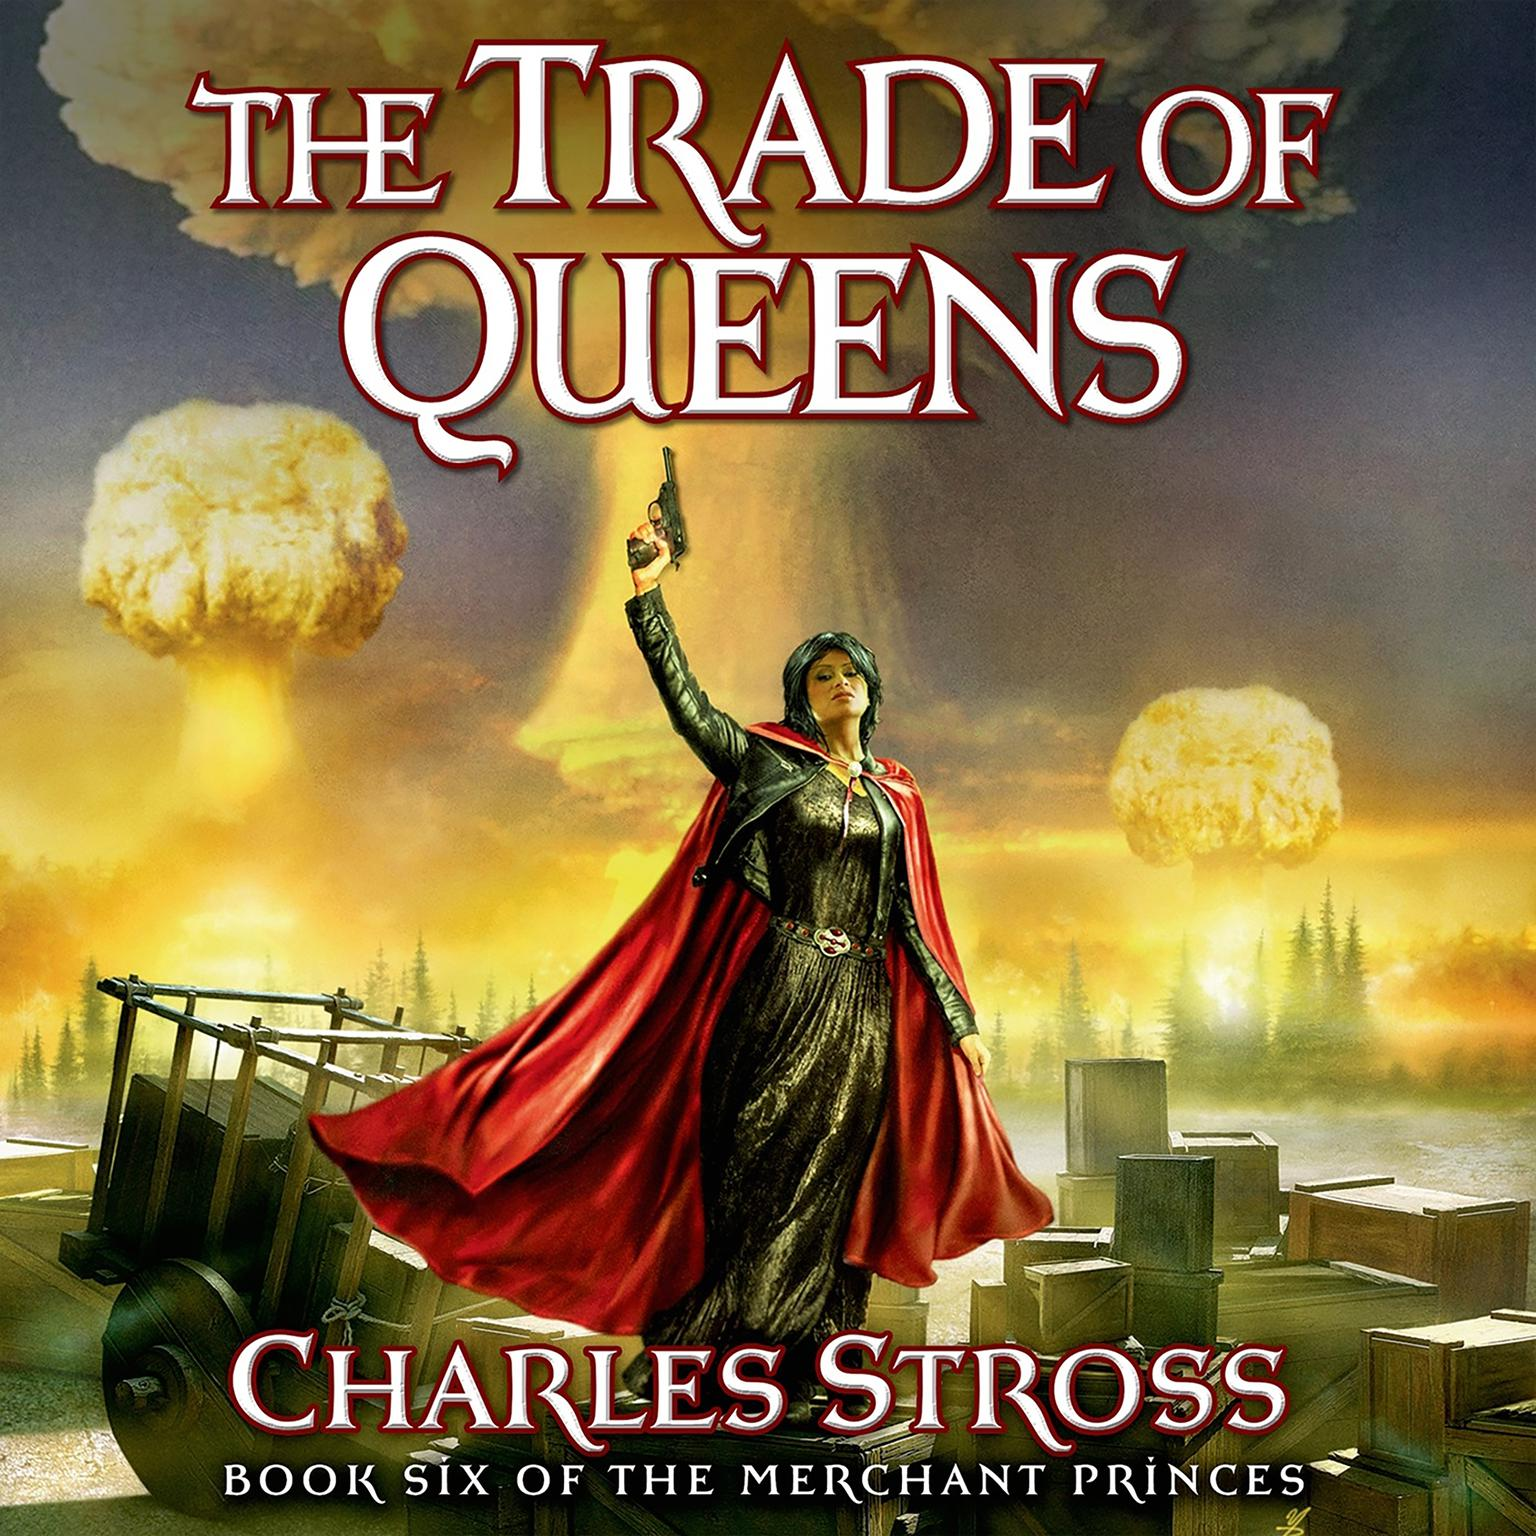 Printable The Trade of Queens: Book Six of the Merchant Princes Audiobook Cover Art